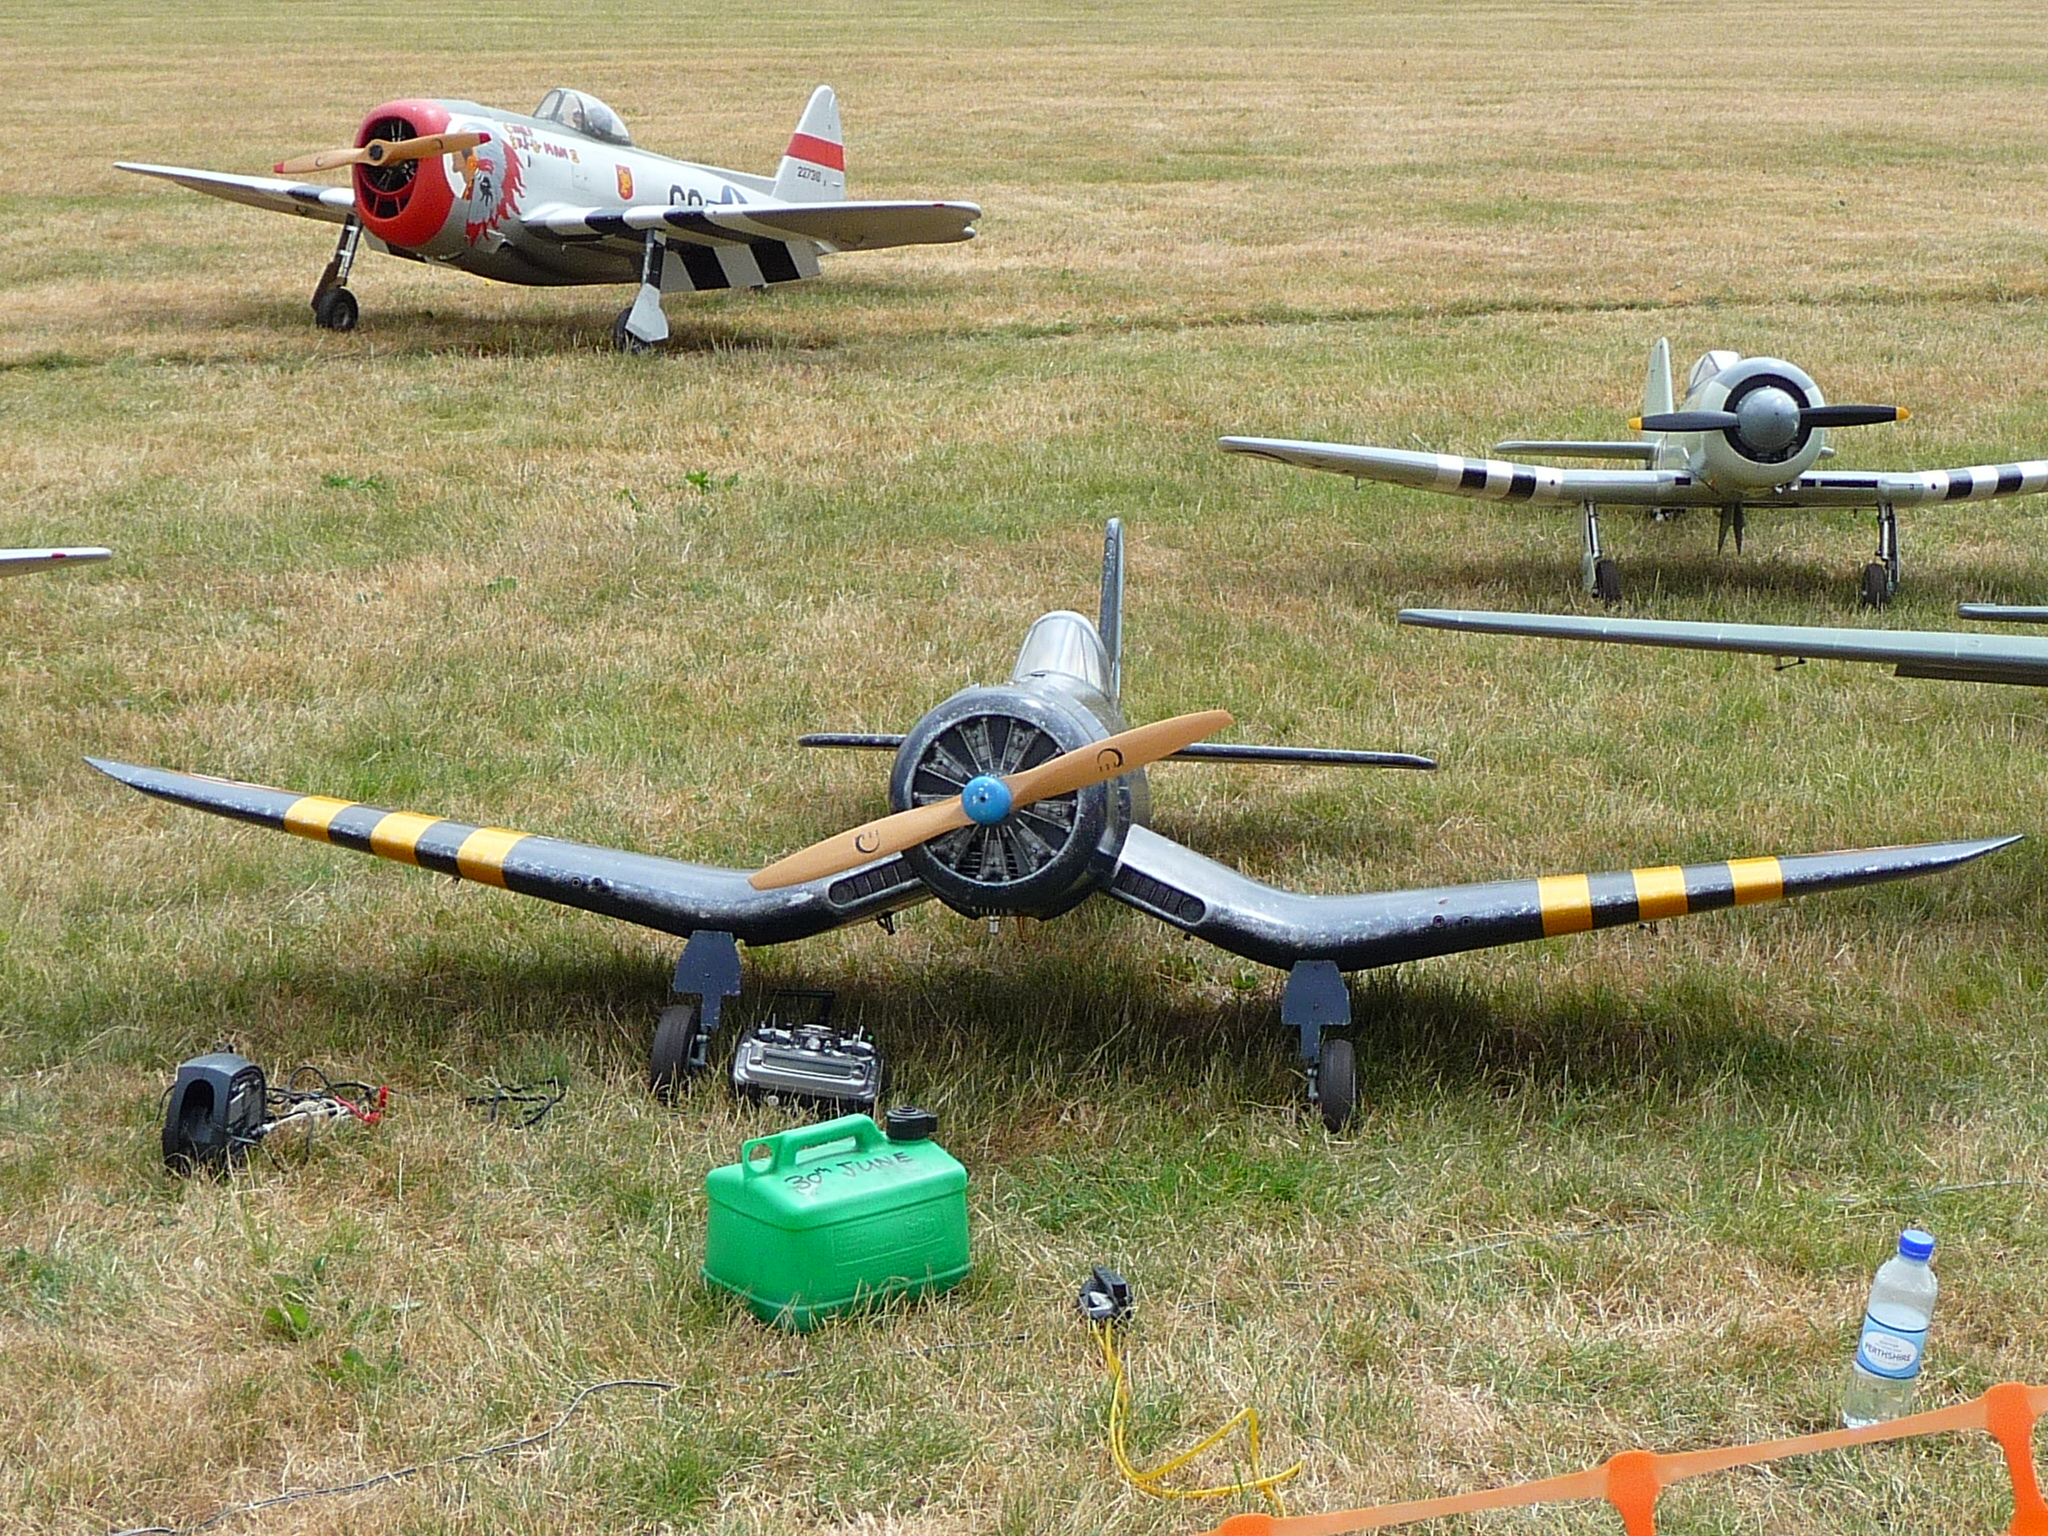 Large model aircraft at the Cosford show 2013